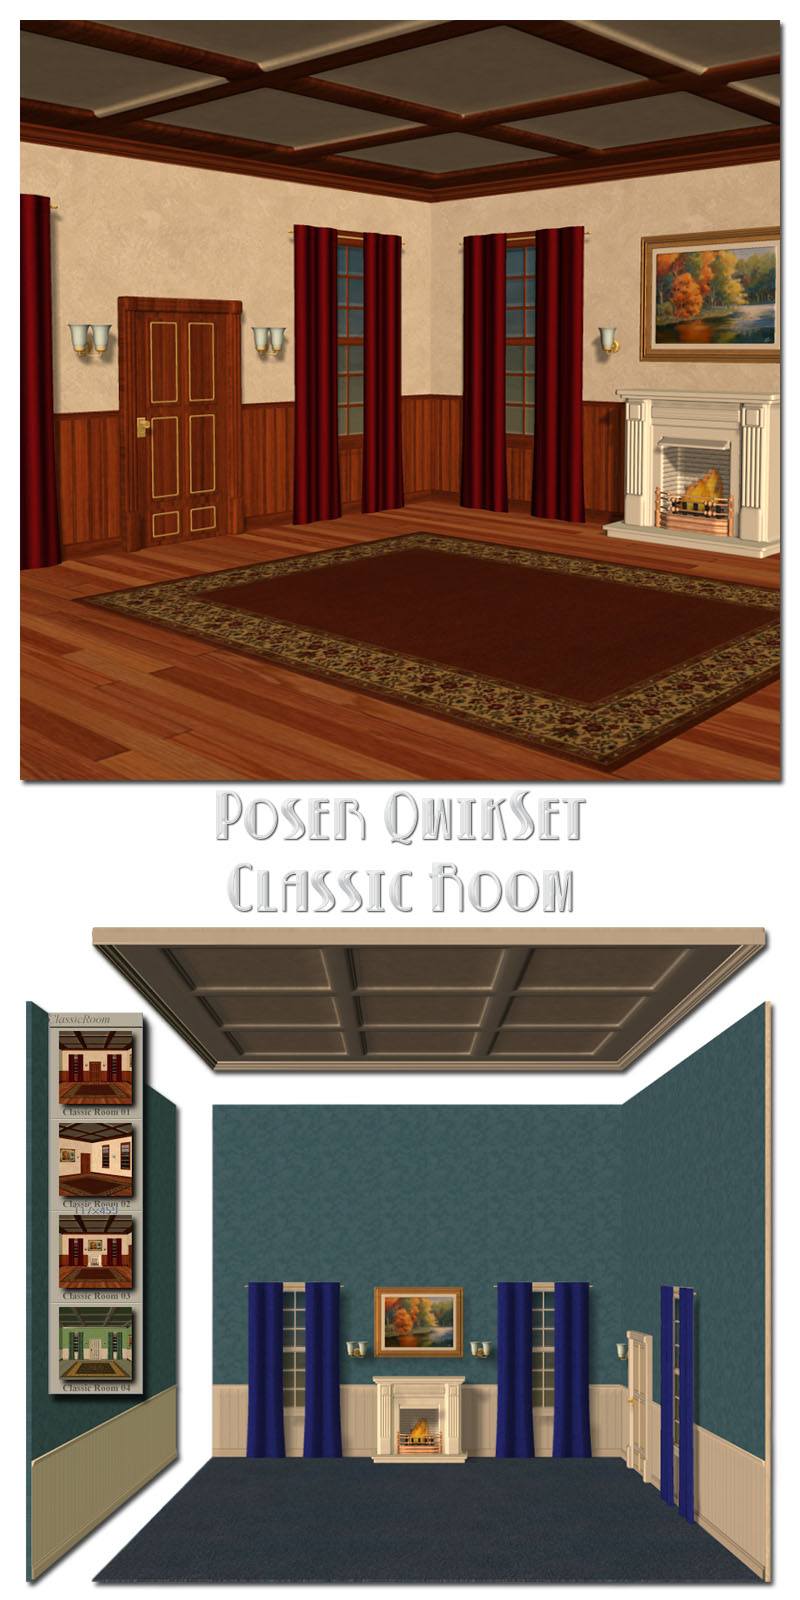 Poser QwikSet - Classic Room